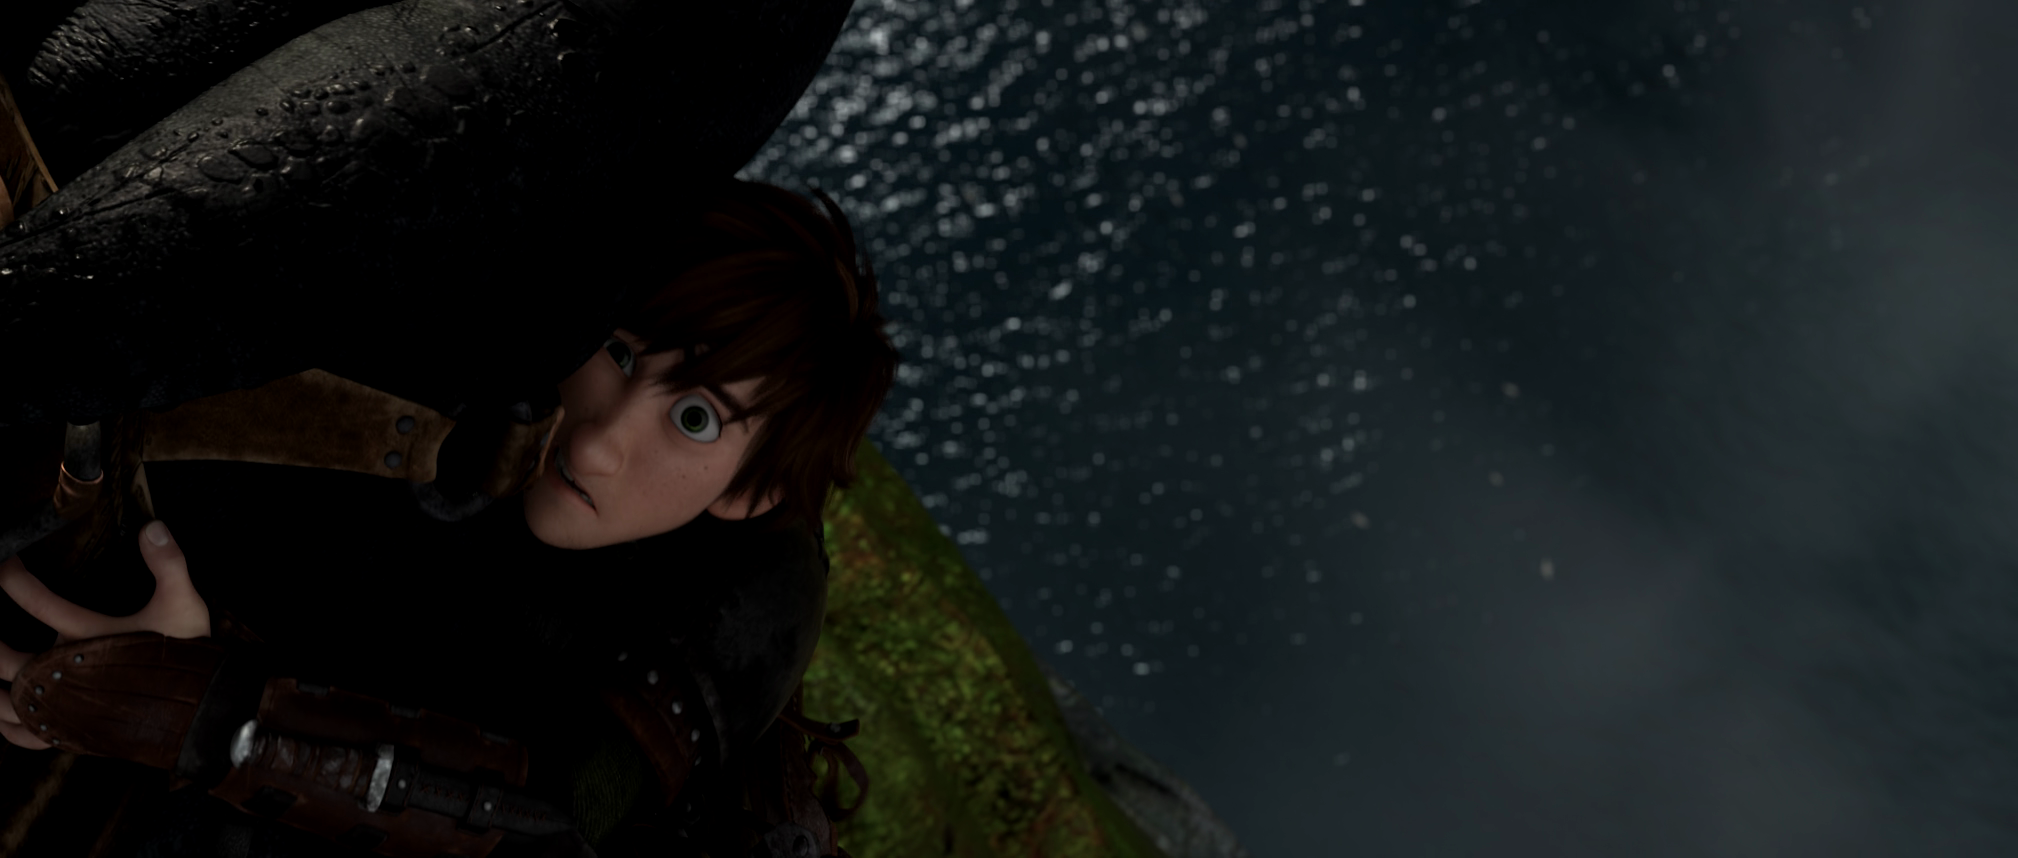 how to train your dragon critic How to train your dragon 2 is the rare sequel that improves upon its predecessor in nearly every single way imaginable.